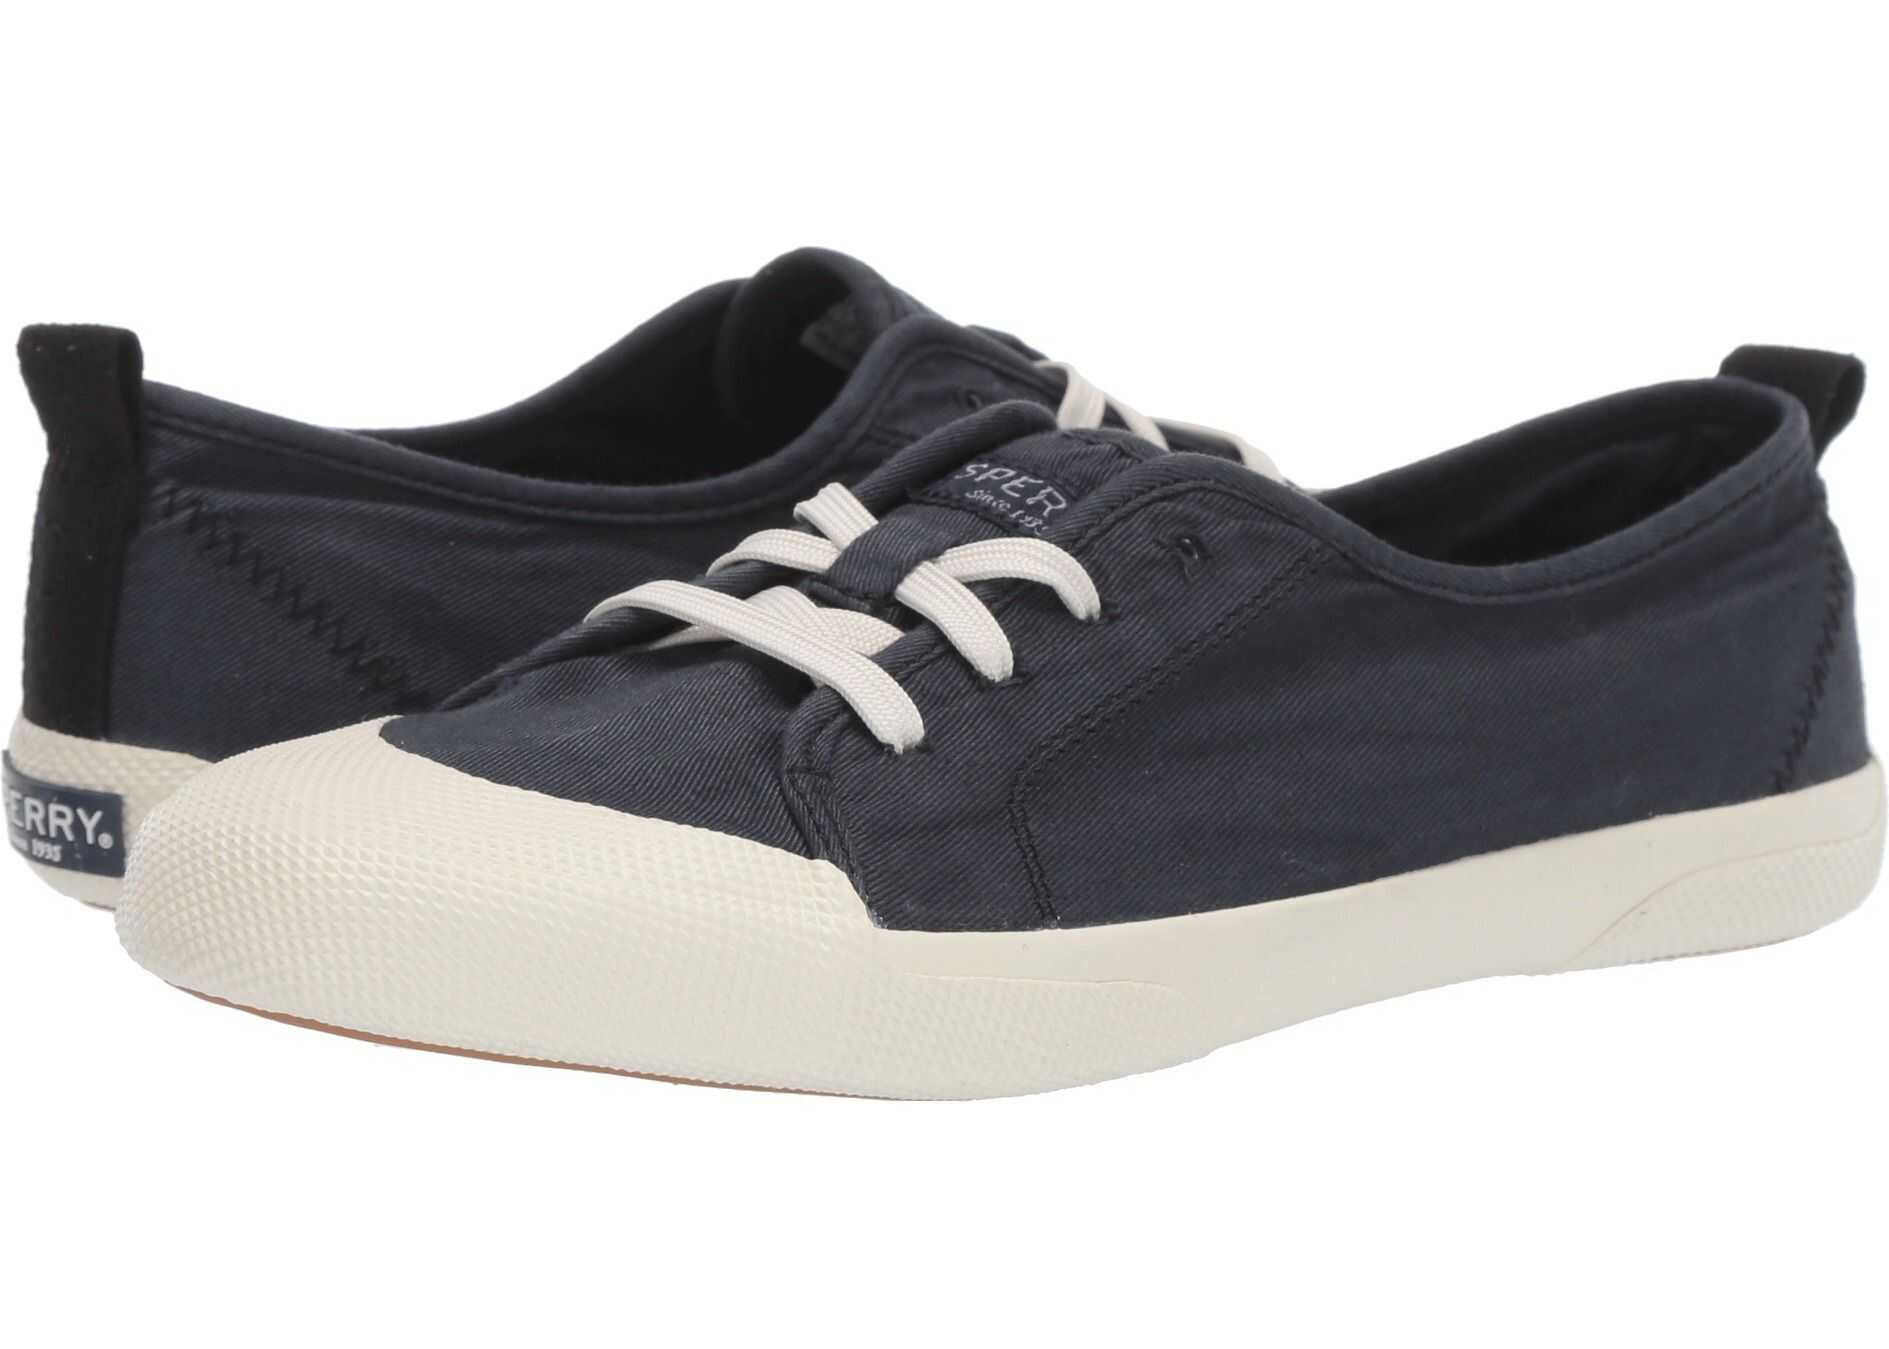 Sperry Top-Sider Breeze Lace-Up Black